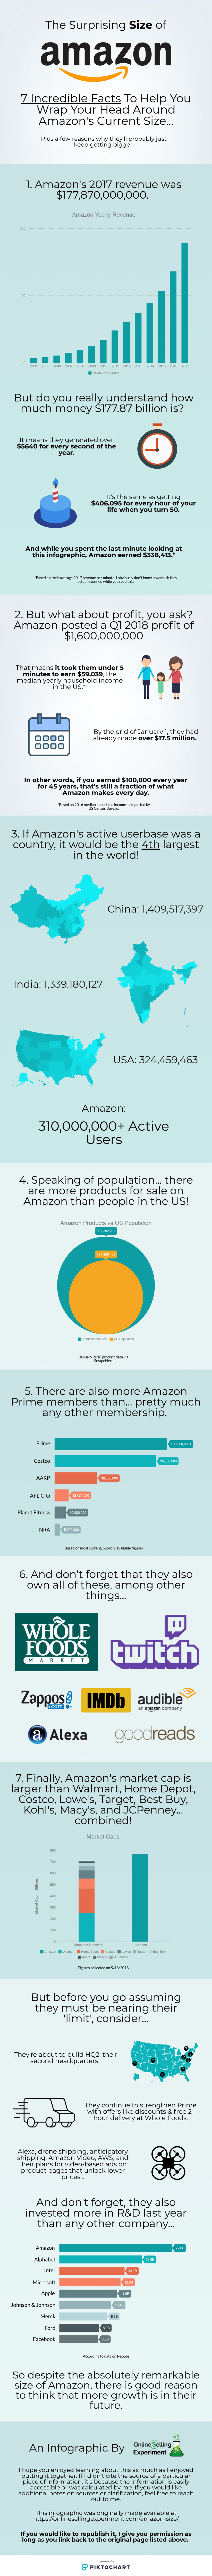 The Surprising Size of Amazon Infographic